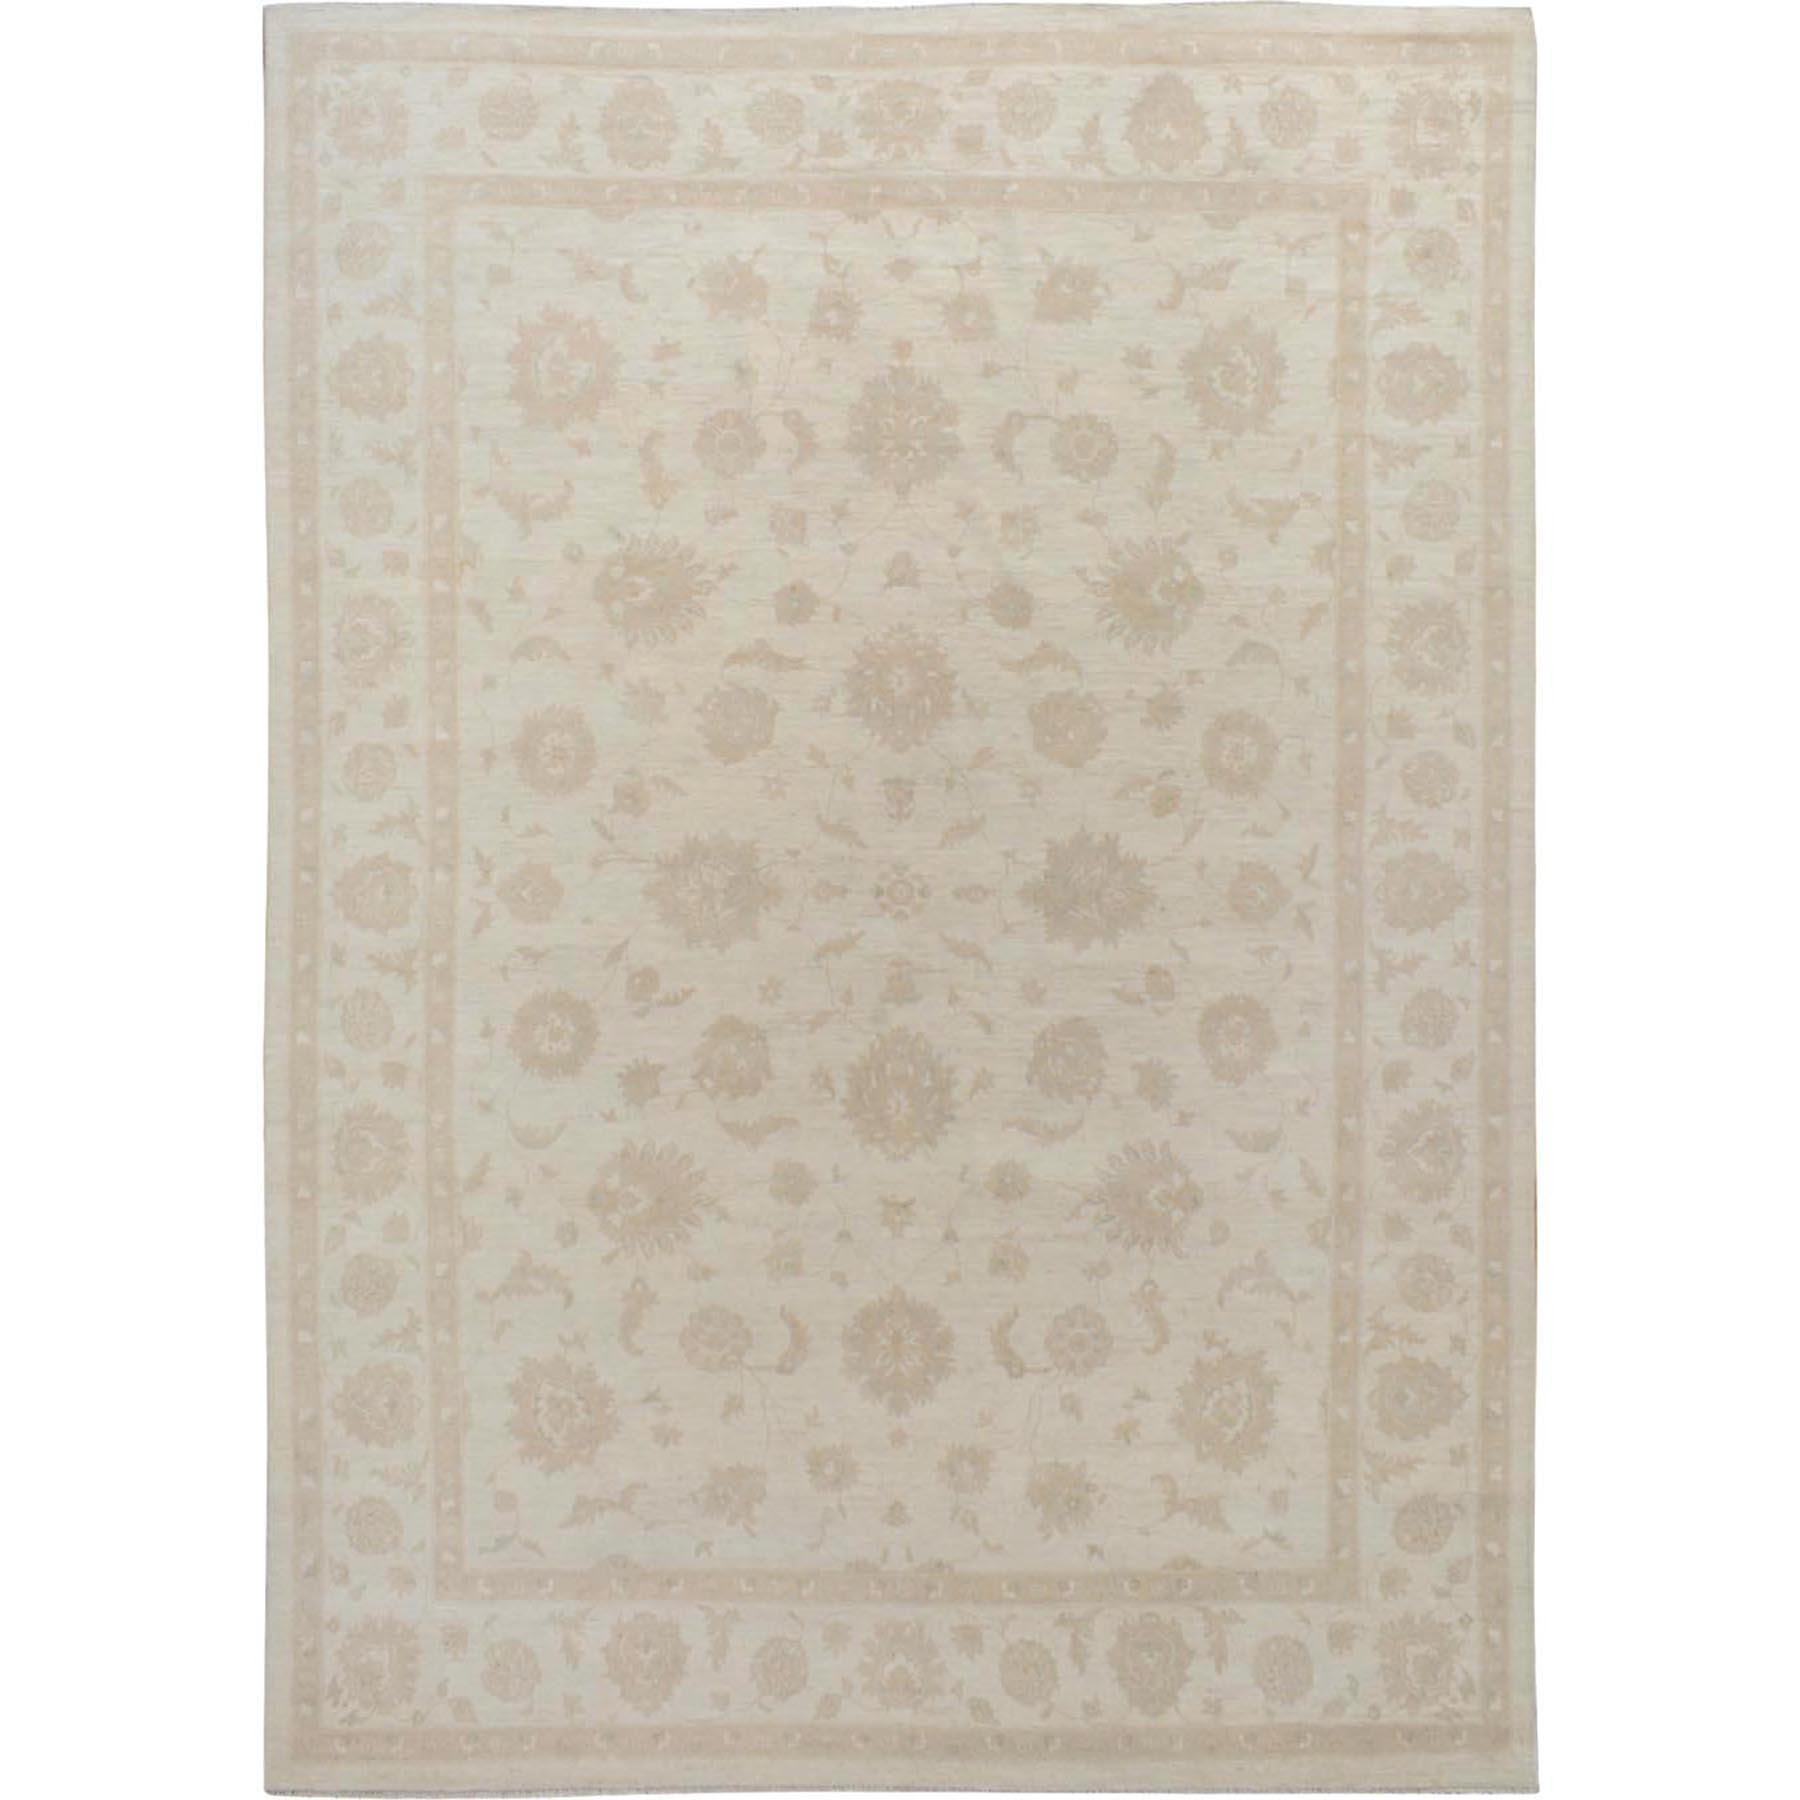 "8'9""x11'9"" Ivory White Wash Peshawar Ziegler Mahal Pure Wool Hand Knotted Oriental Rug"